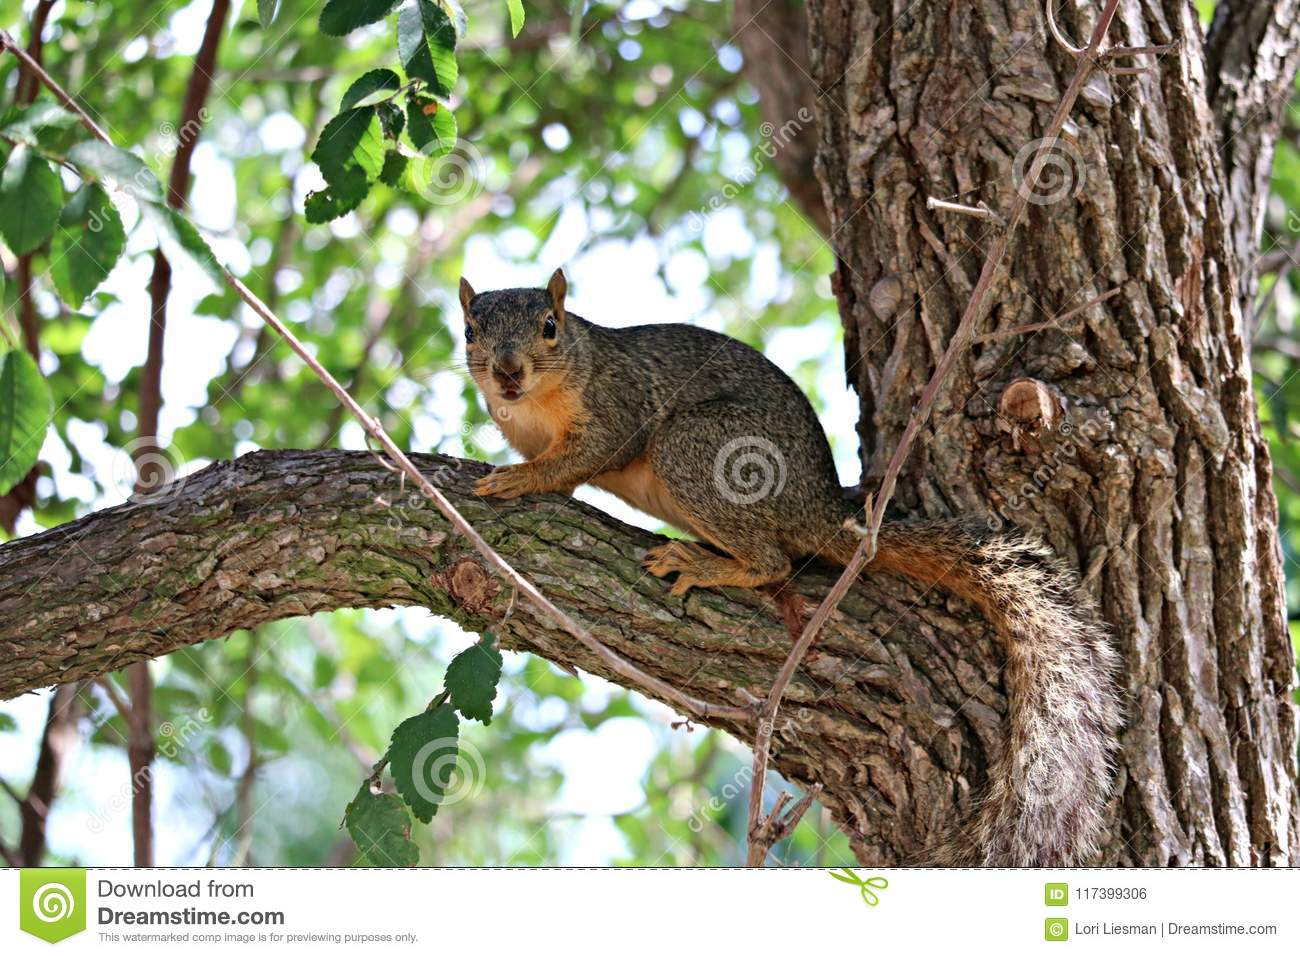 A close up of fox squirrel standing on a limb in a large oak tree.